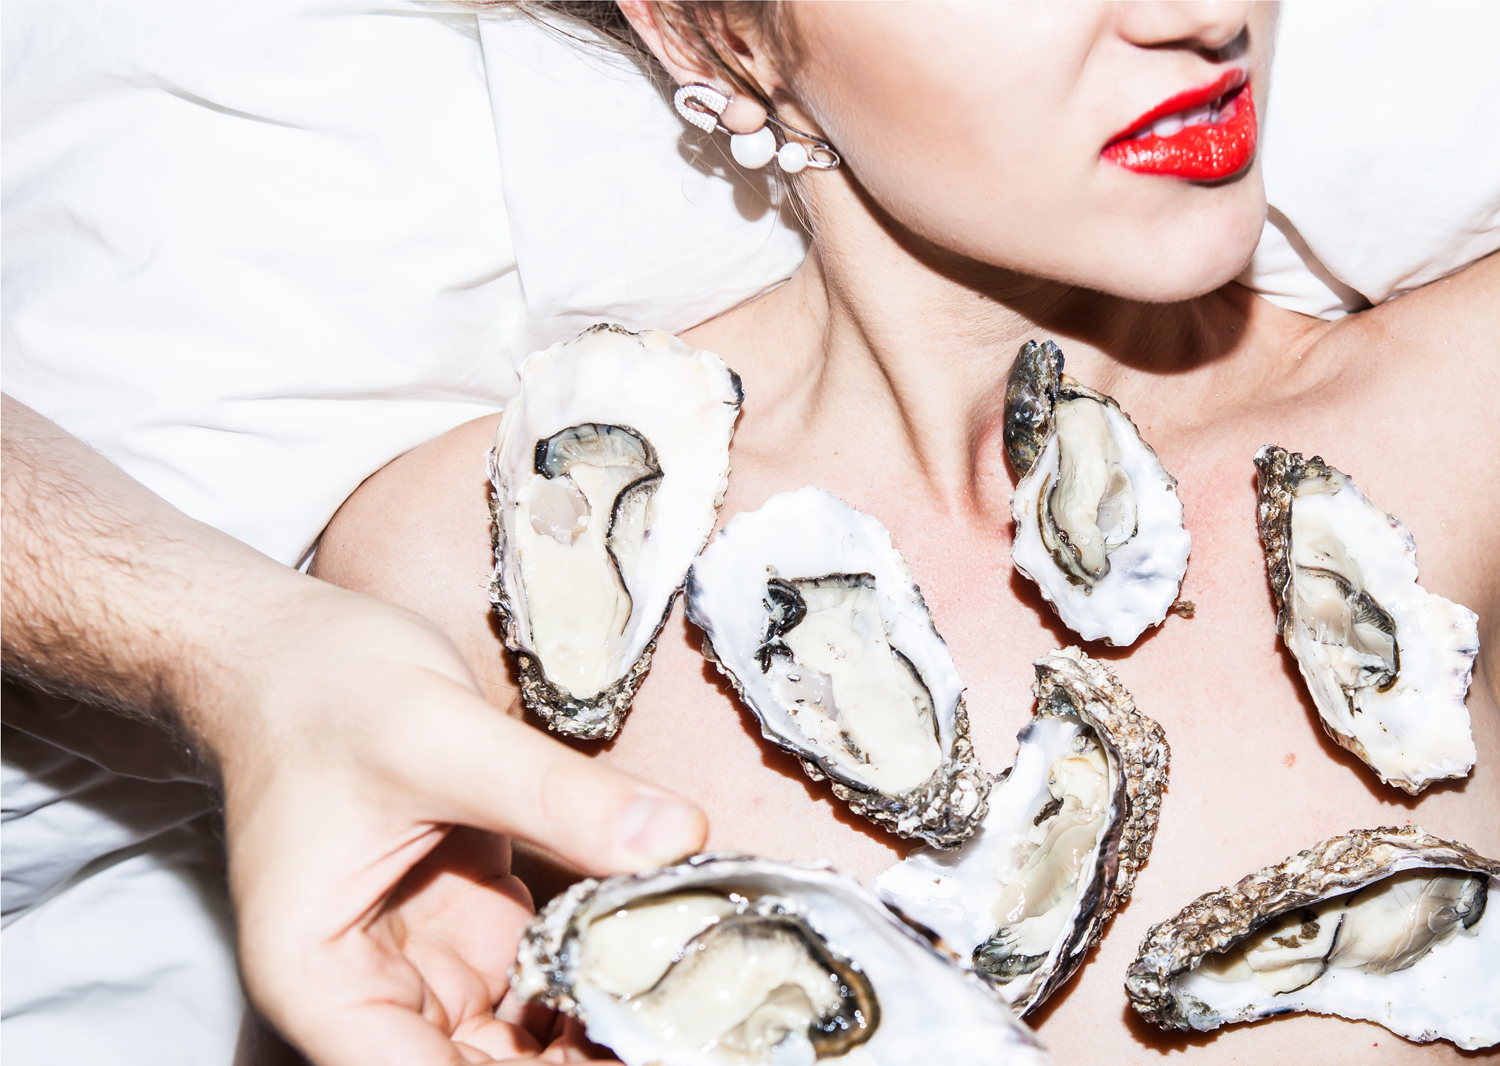 BACKSTAGE PASS: PEARLS, OYSTERS AND ROMANCE, MASTERED WITH NICK KNIGHT